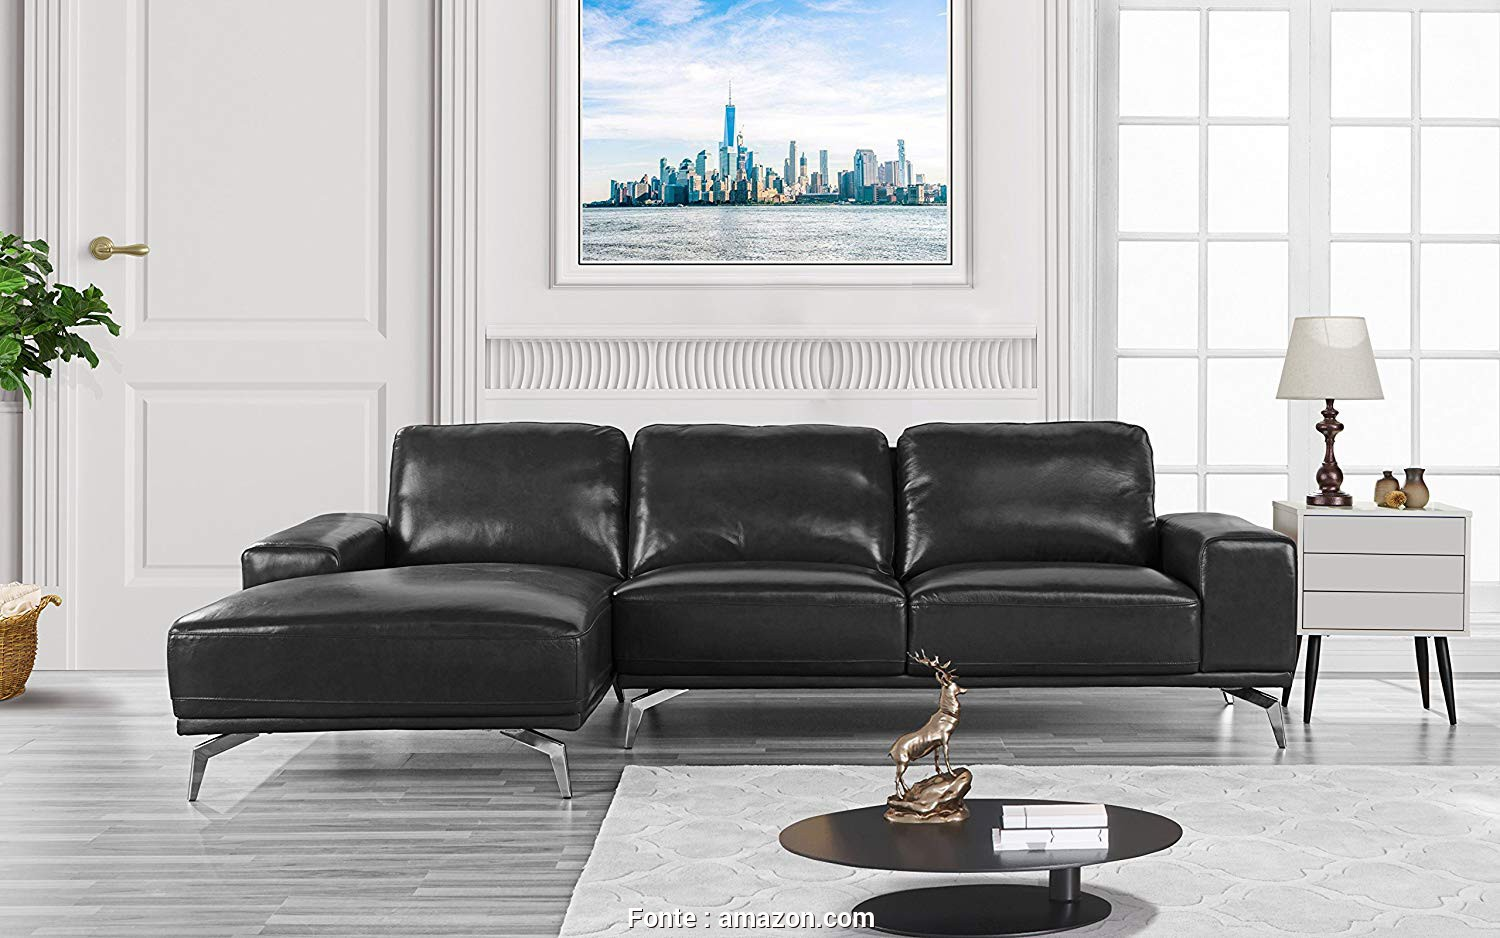 Copricuscini Divano Amazon, Ideale Amazon.Com: Divano Roma Furniture, Modern Real Leather Sectional Sofa, L-Shape Couch W/Chaise On Left (Black): Kitchen & Dining